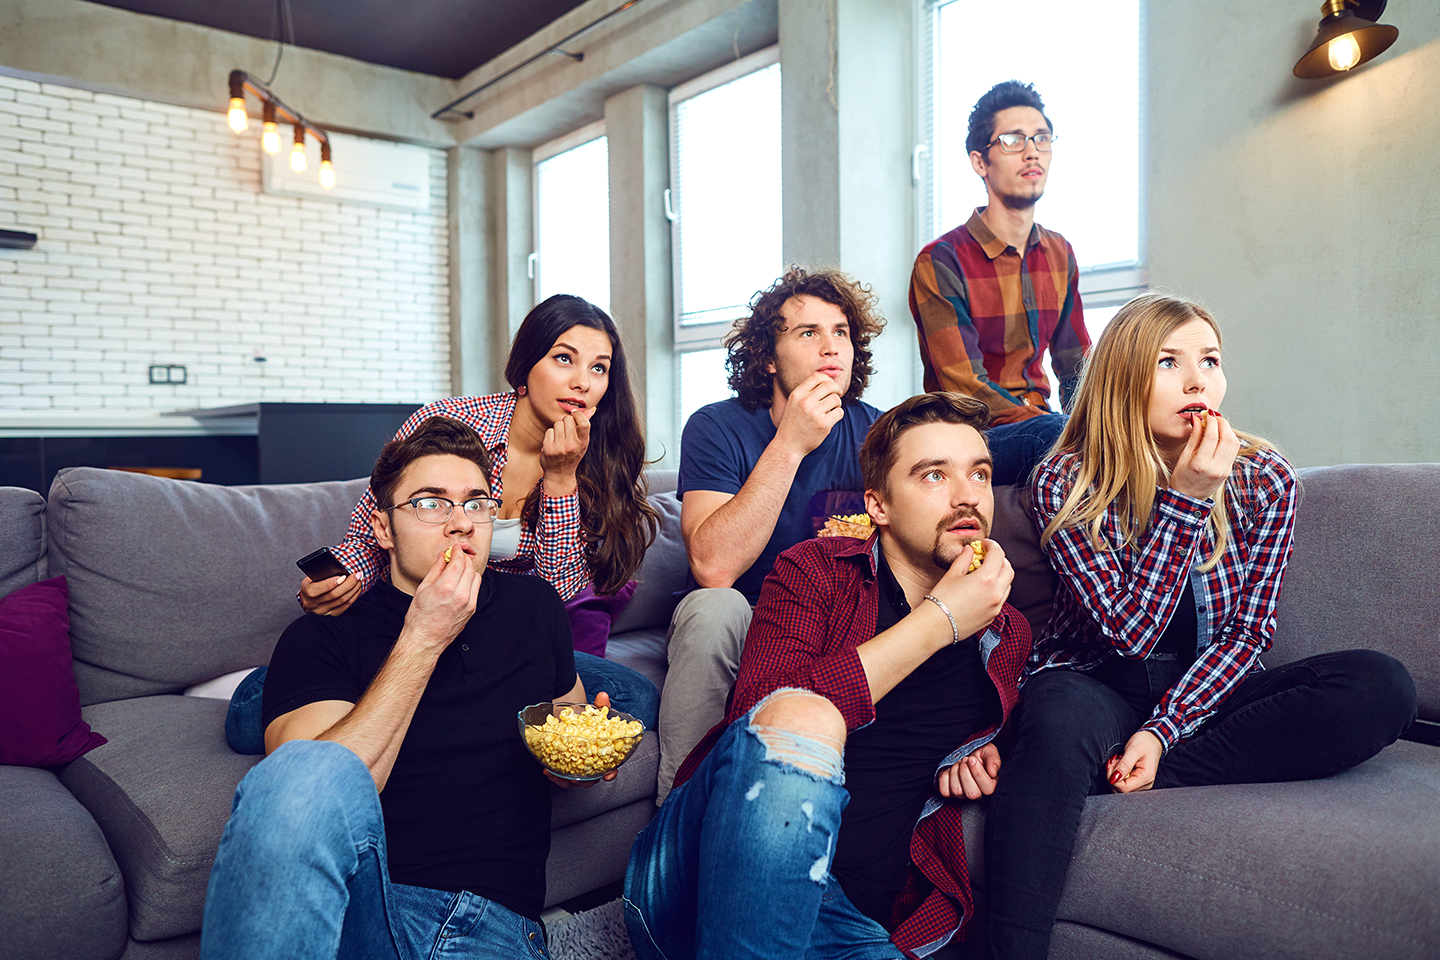 group of people watching TV